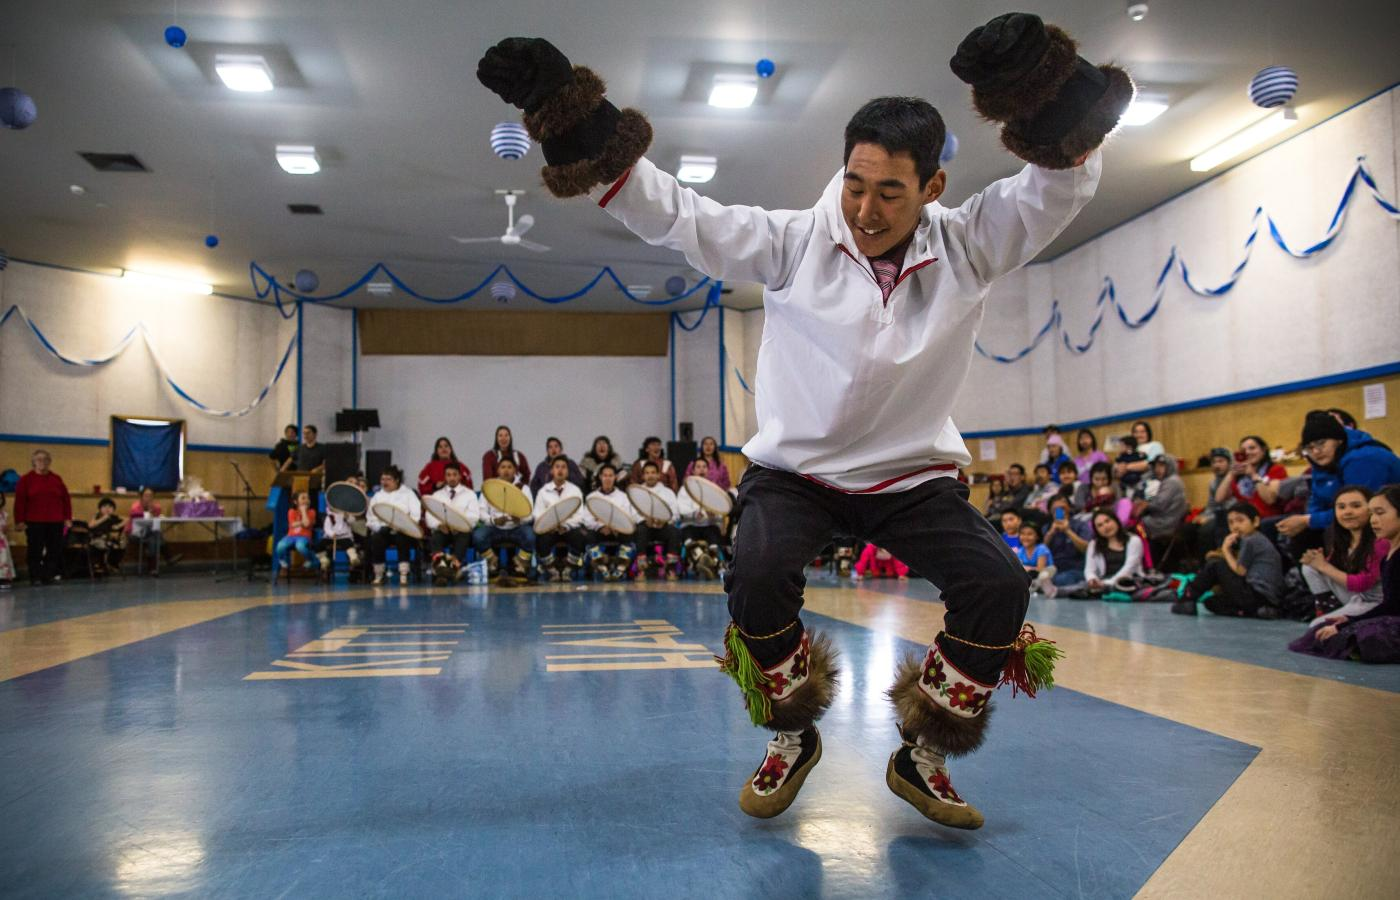 Celebrate National Indigenous Peoples Day on June 21 in Inuvik, Northwest Territories, Canada by watching Inuvialuit Drummers and Dancers